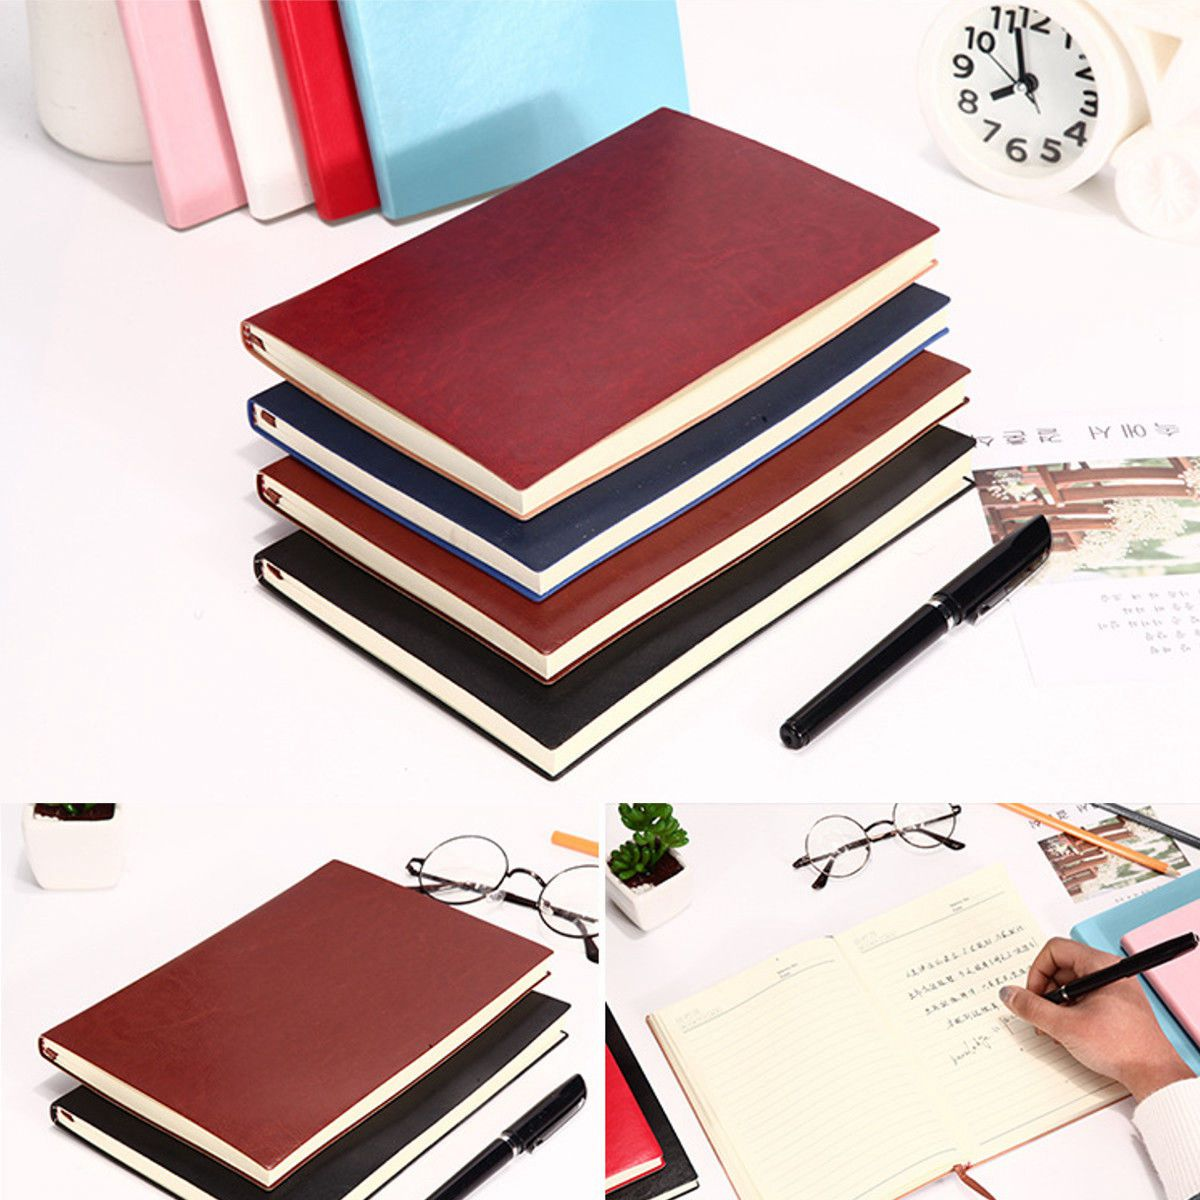 Hot sale 6 Color Random Soft Cover PU Leather Notebook Writing Journal 100 Page Lined Diary Book my beauty diary 10 page 6